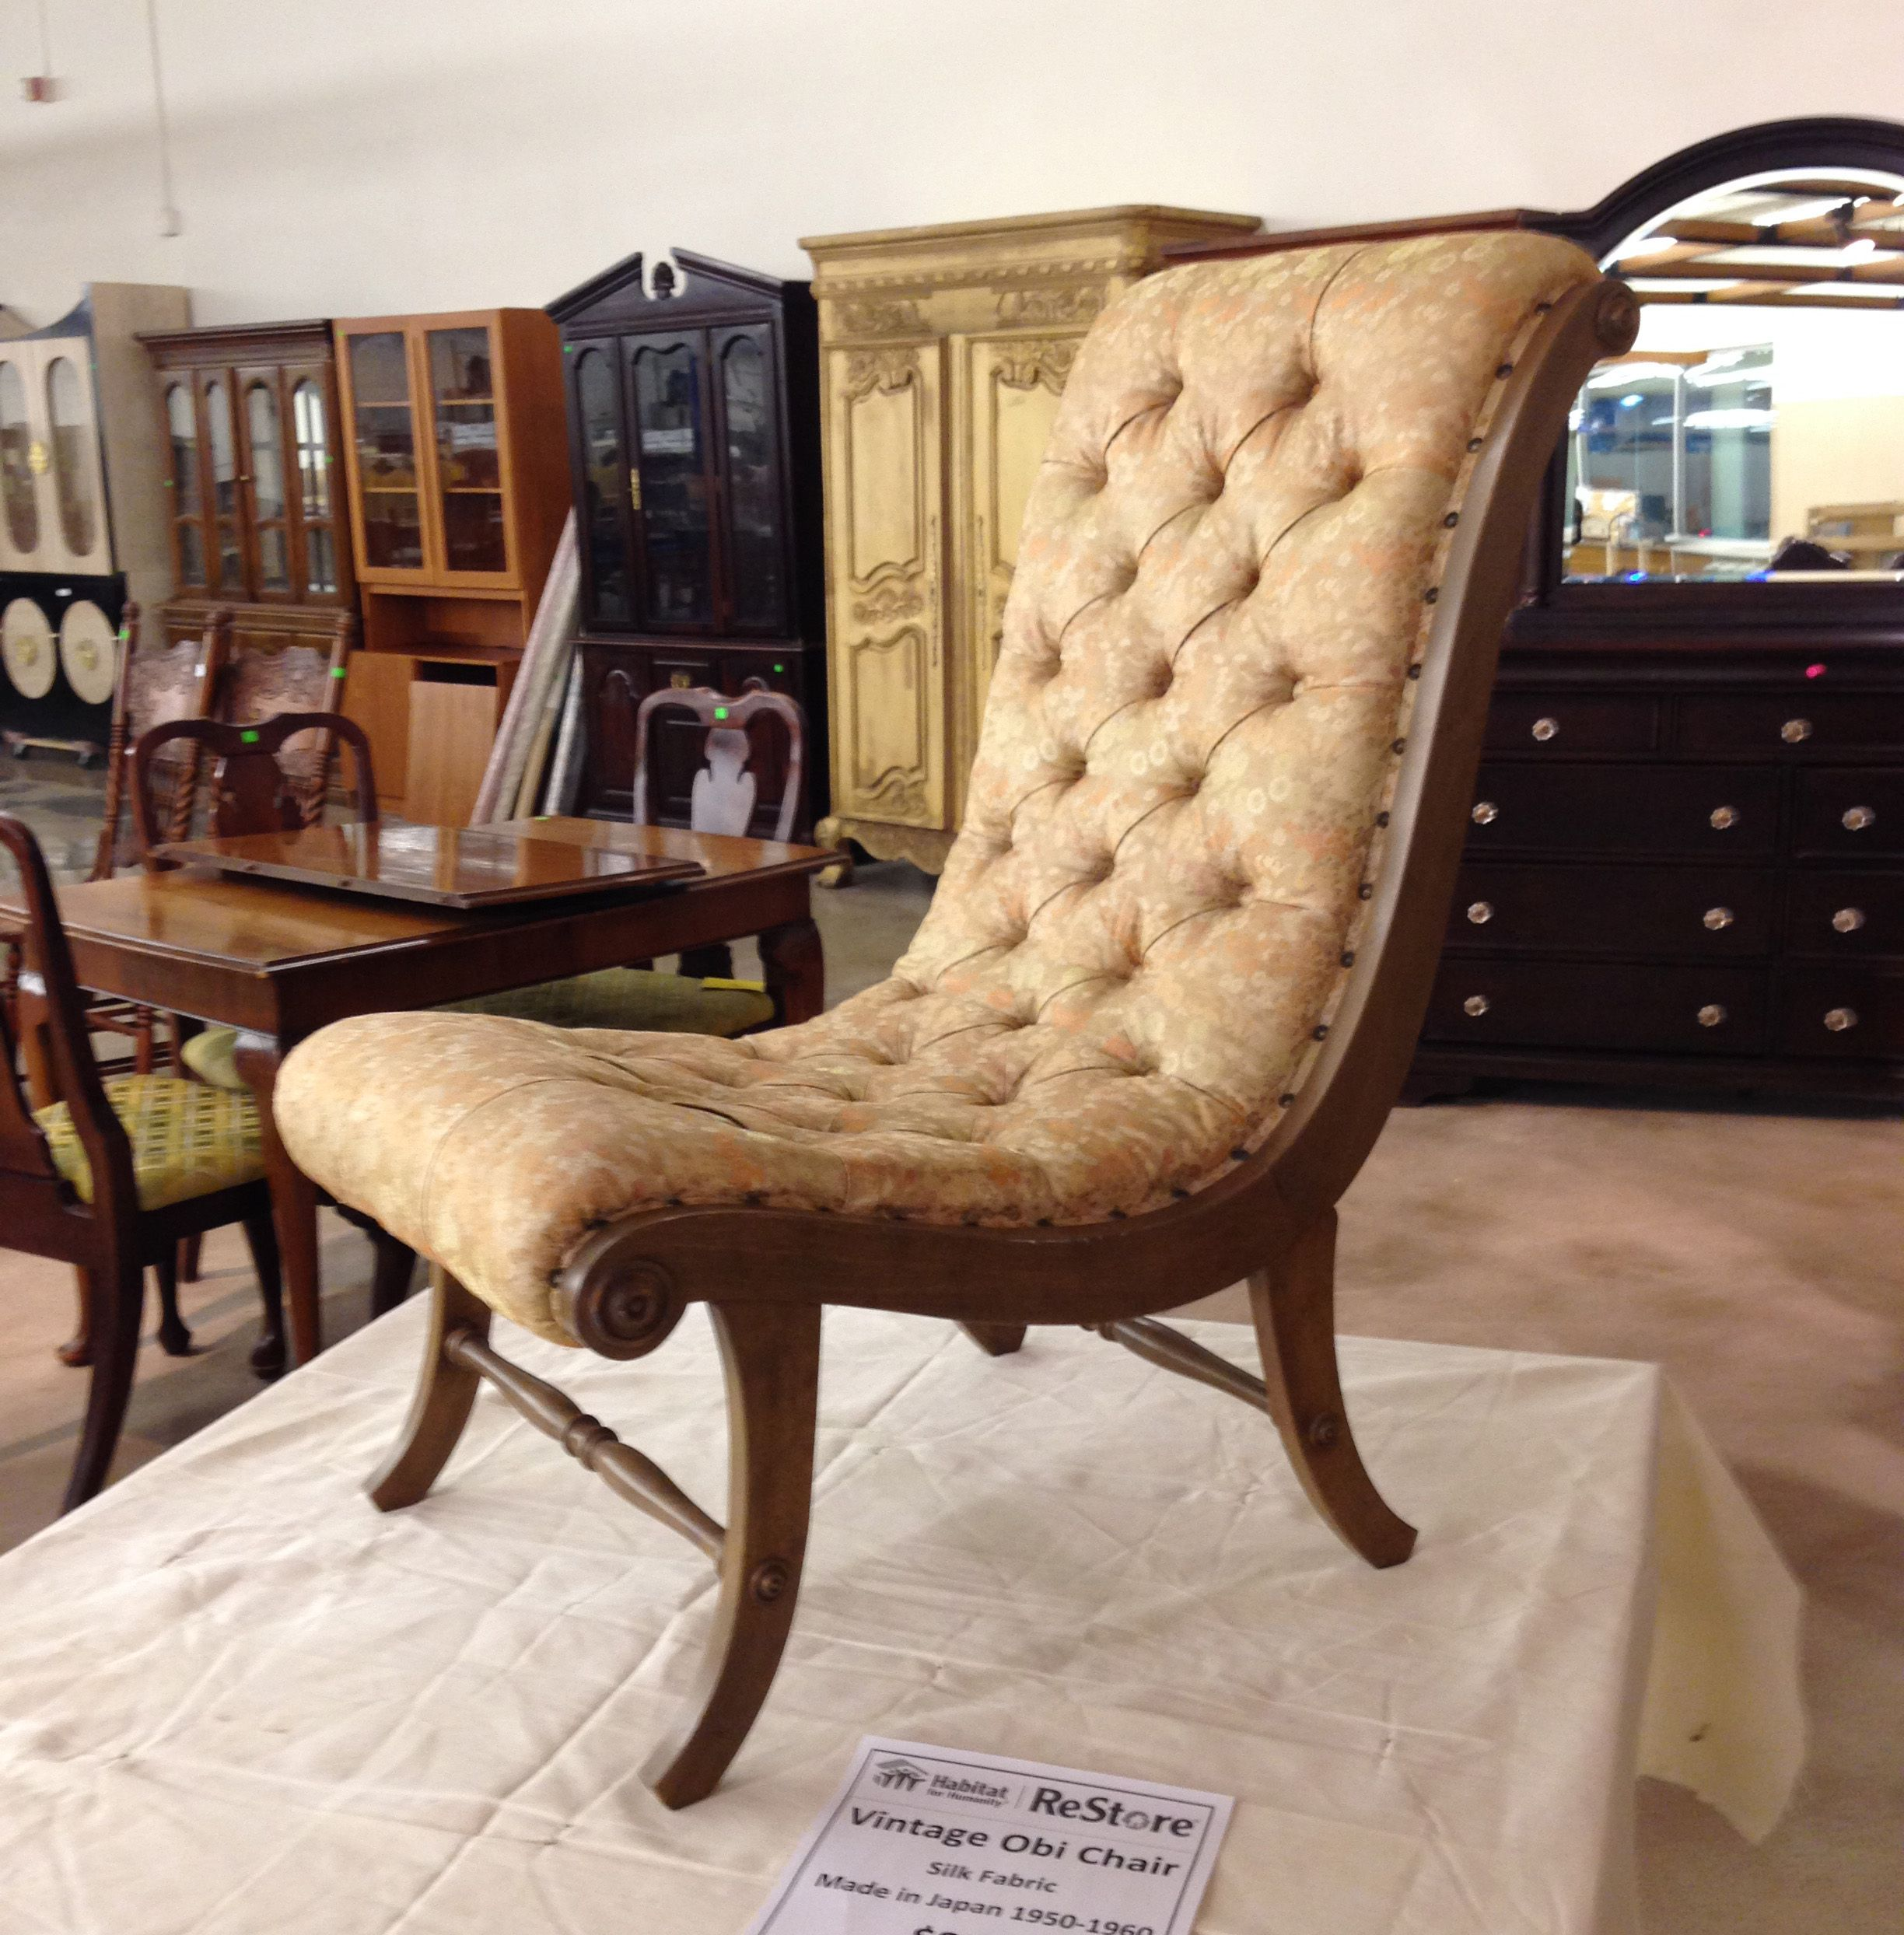 A Japanese Obi Chair donated to the ReStore These were